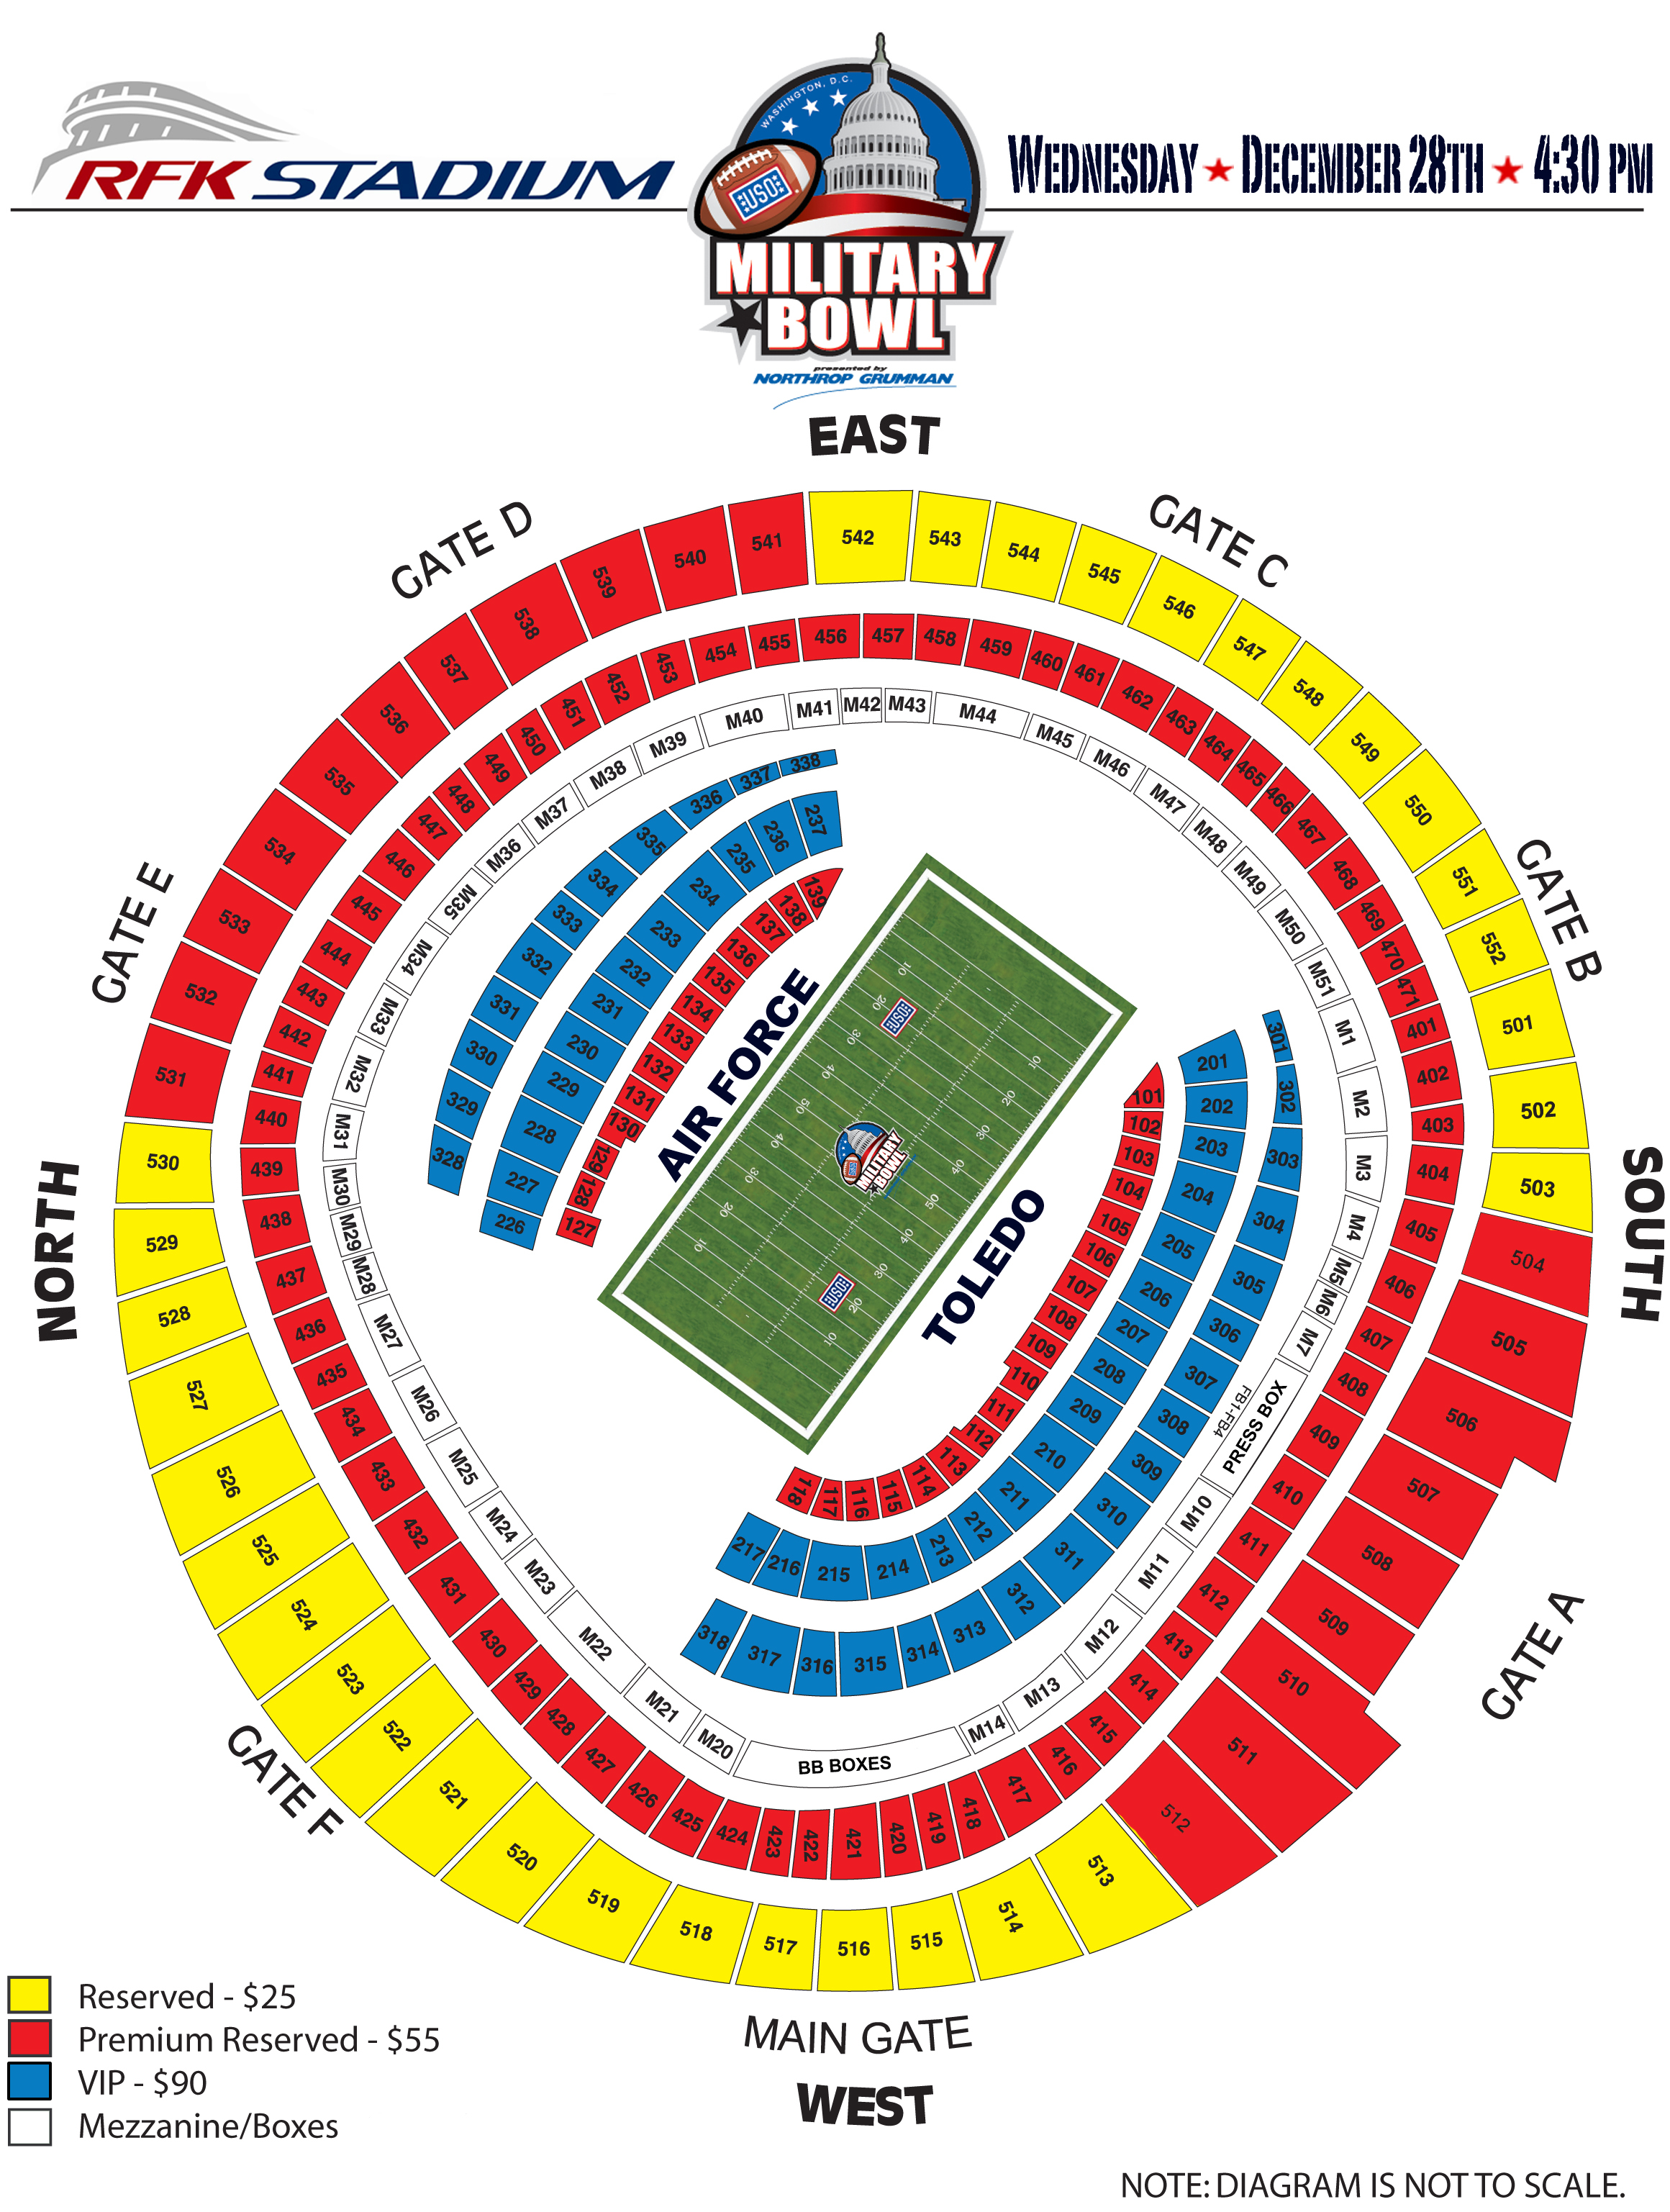 Rfk stadium washington d c tickets schedule seating charts